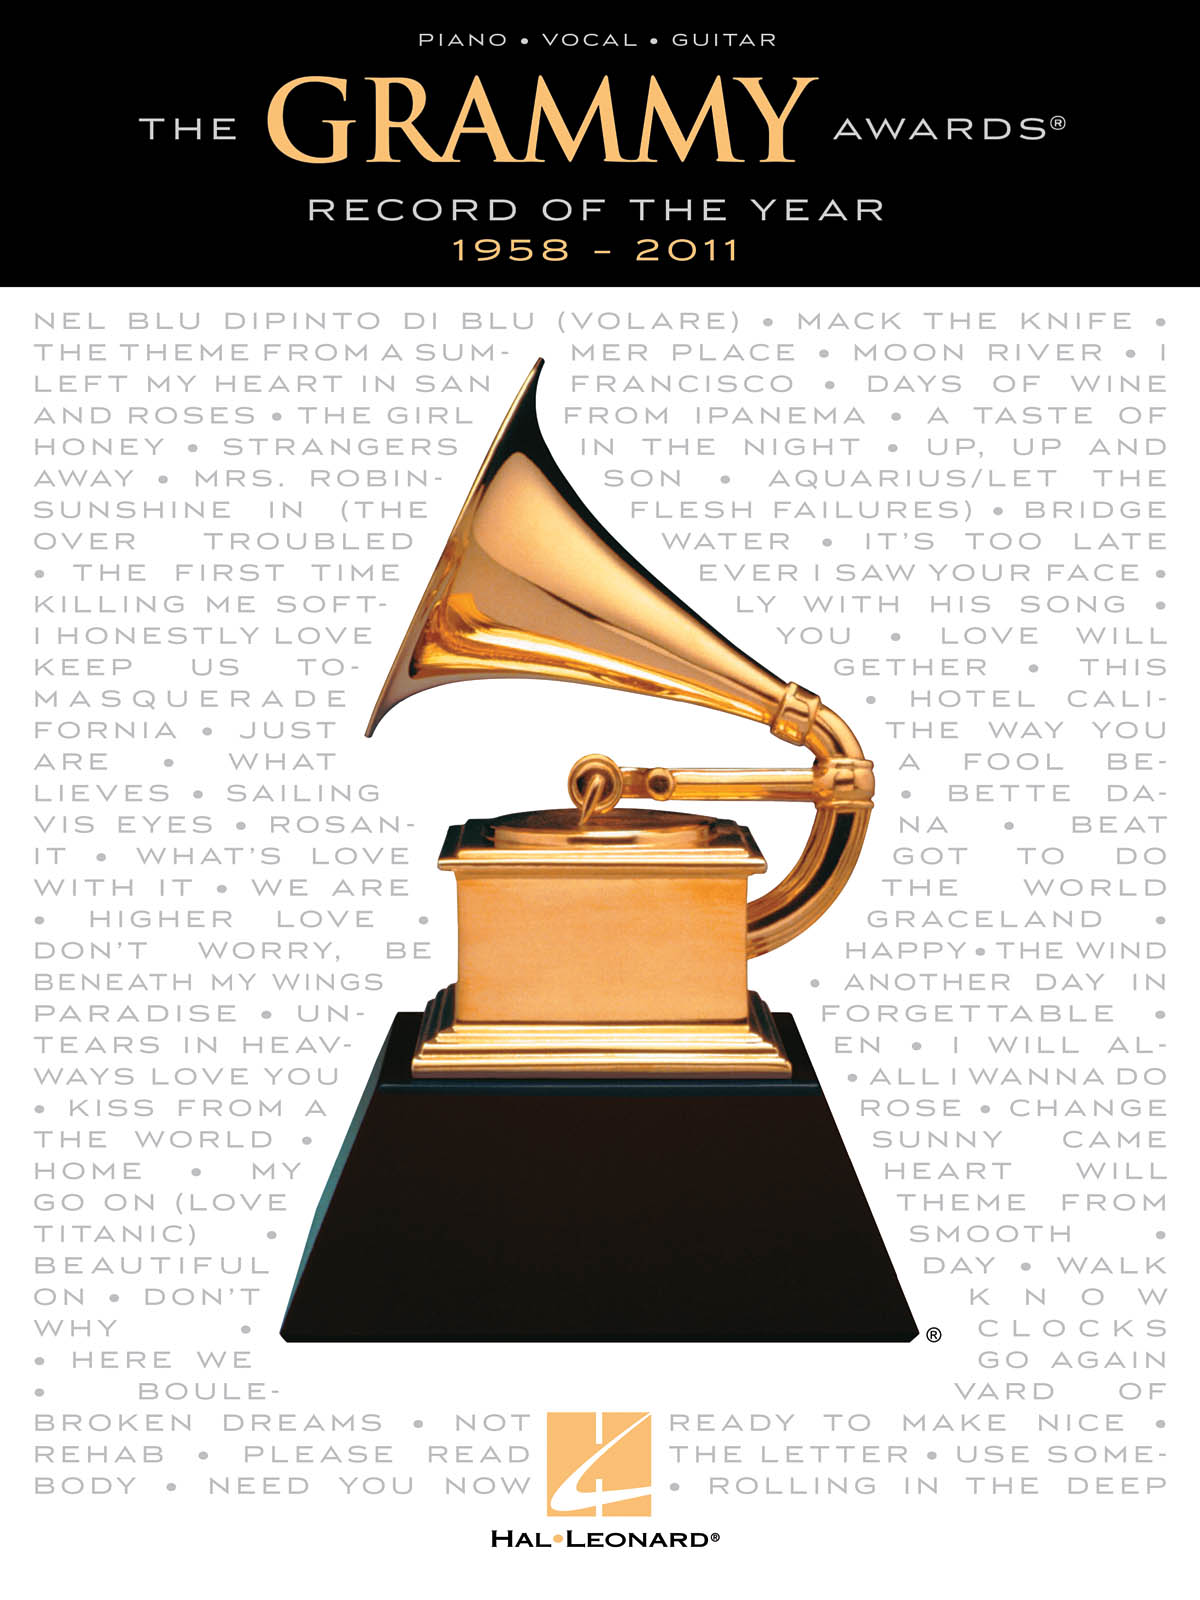 The GRAMMY Awards÷ Record of the Year - 1958-2011: Piano  Vocal and Guitar: